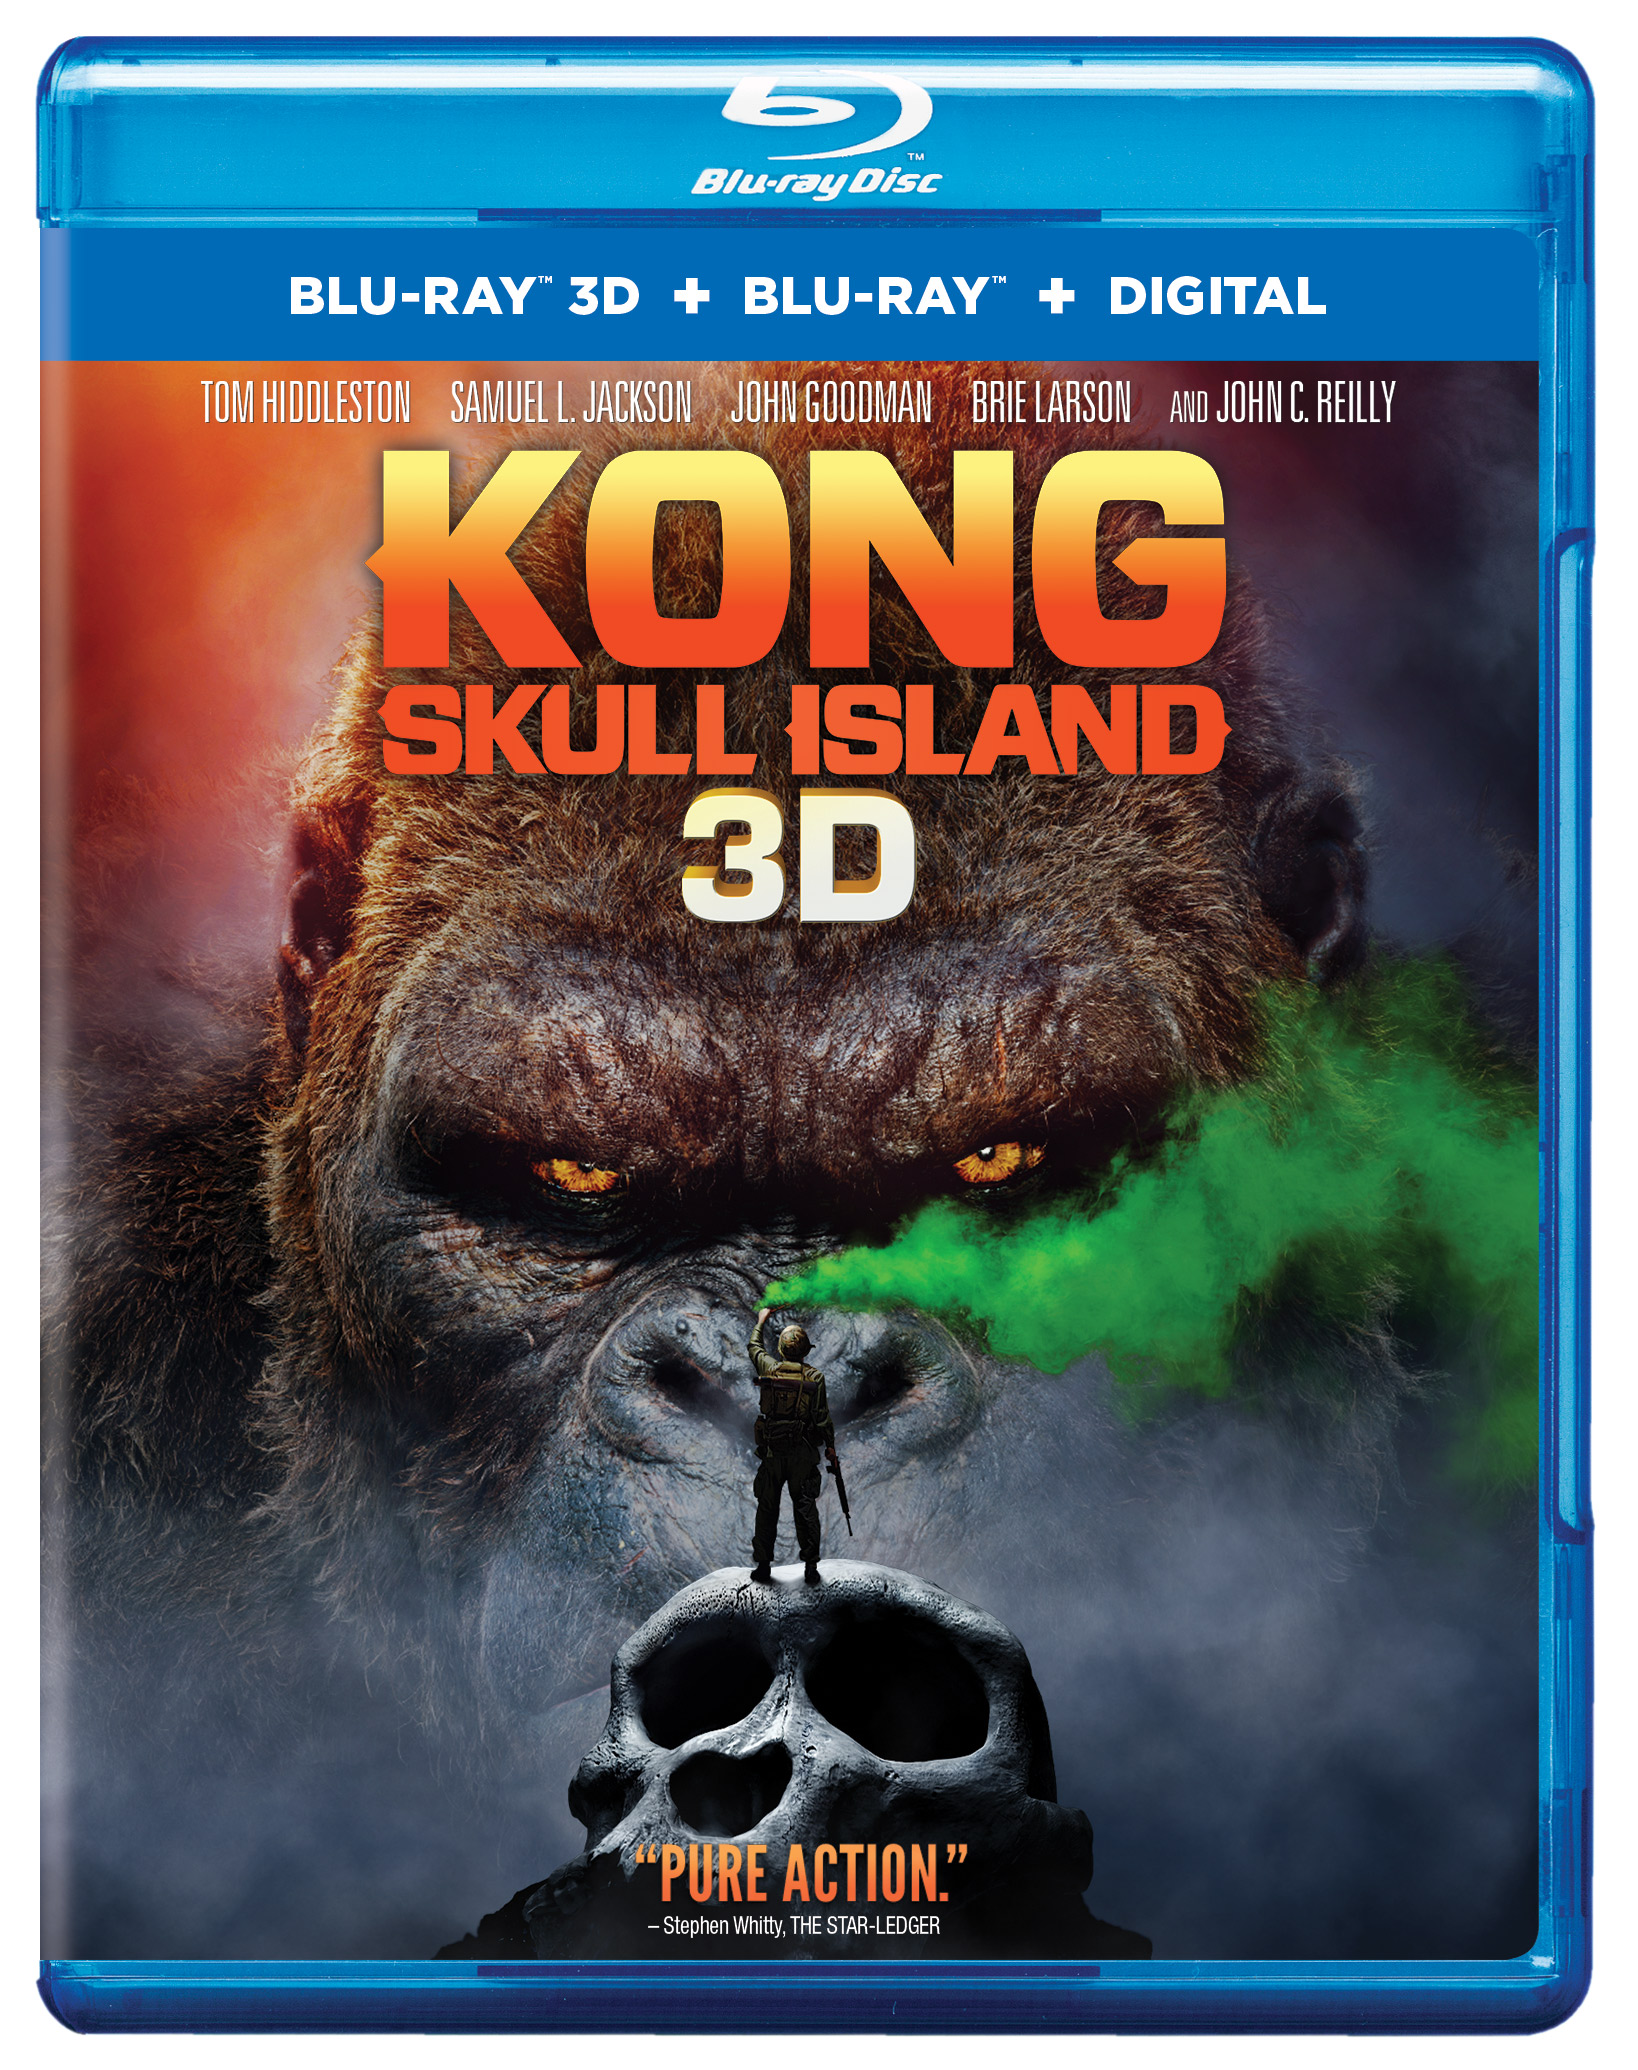 own kong skull island on ultra hd blu ray 3d blu ray blu ray and dvd on july 18 or own it. Black Bedroom Furniture Sets. Home Design Ideas